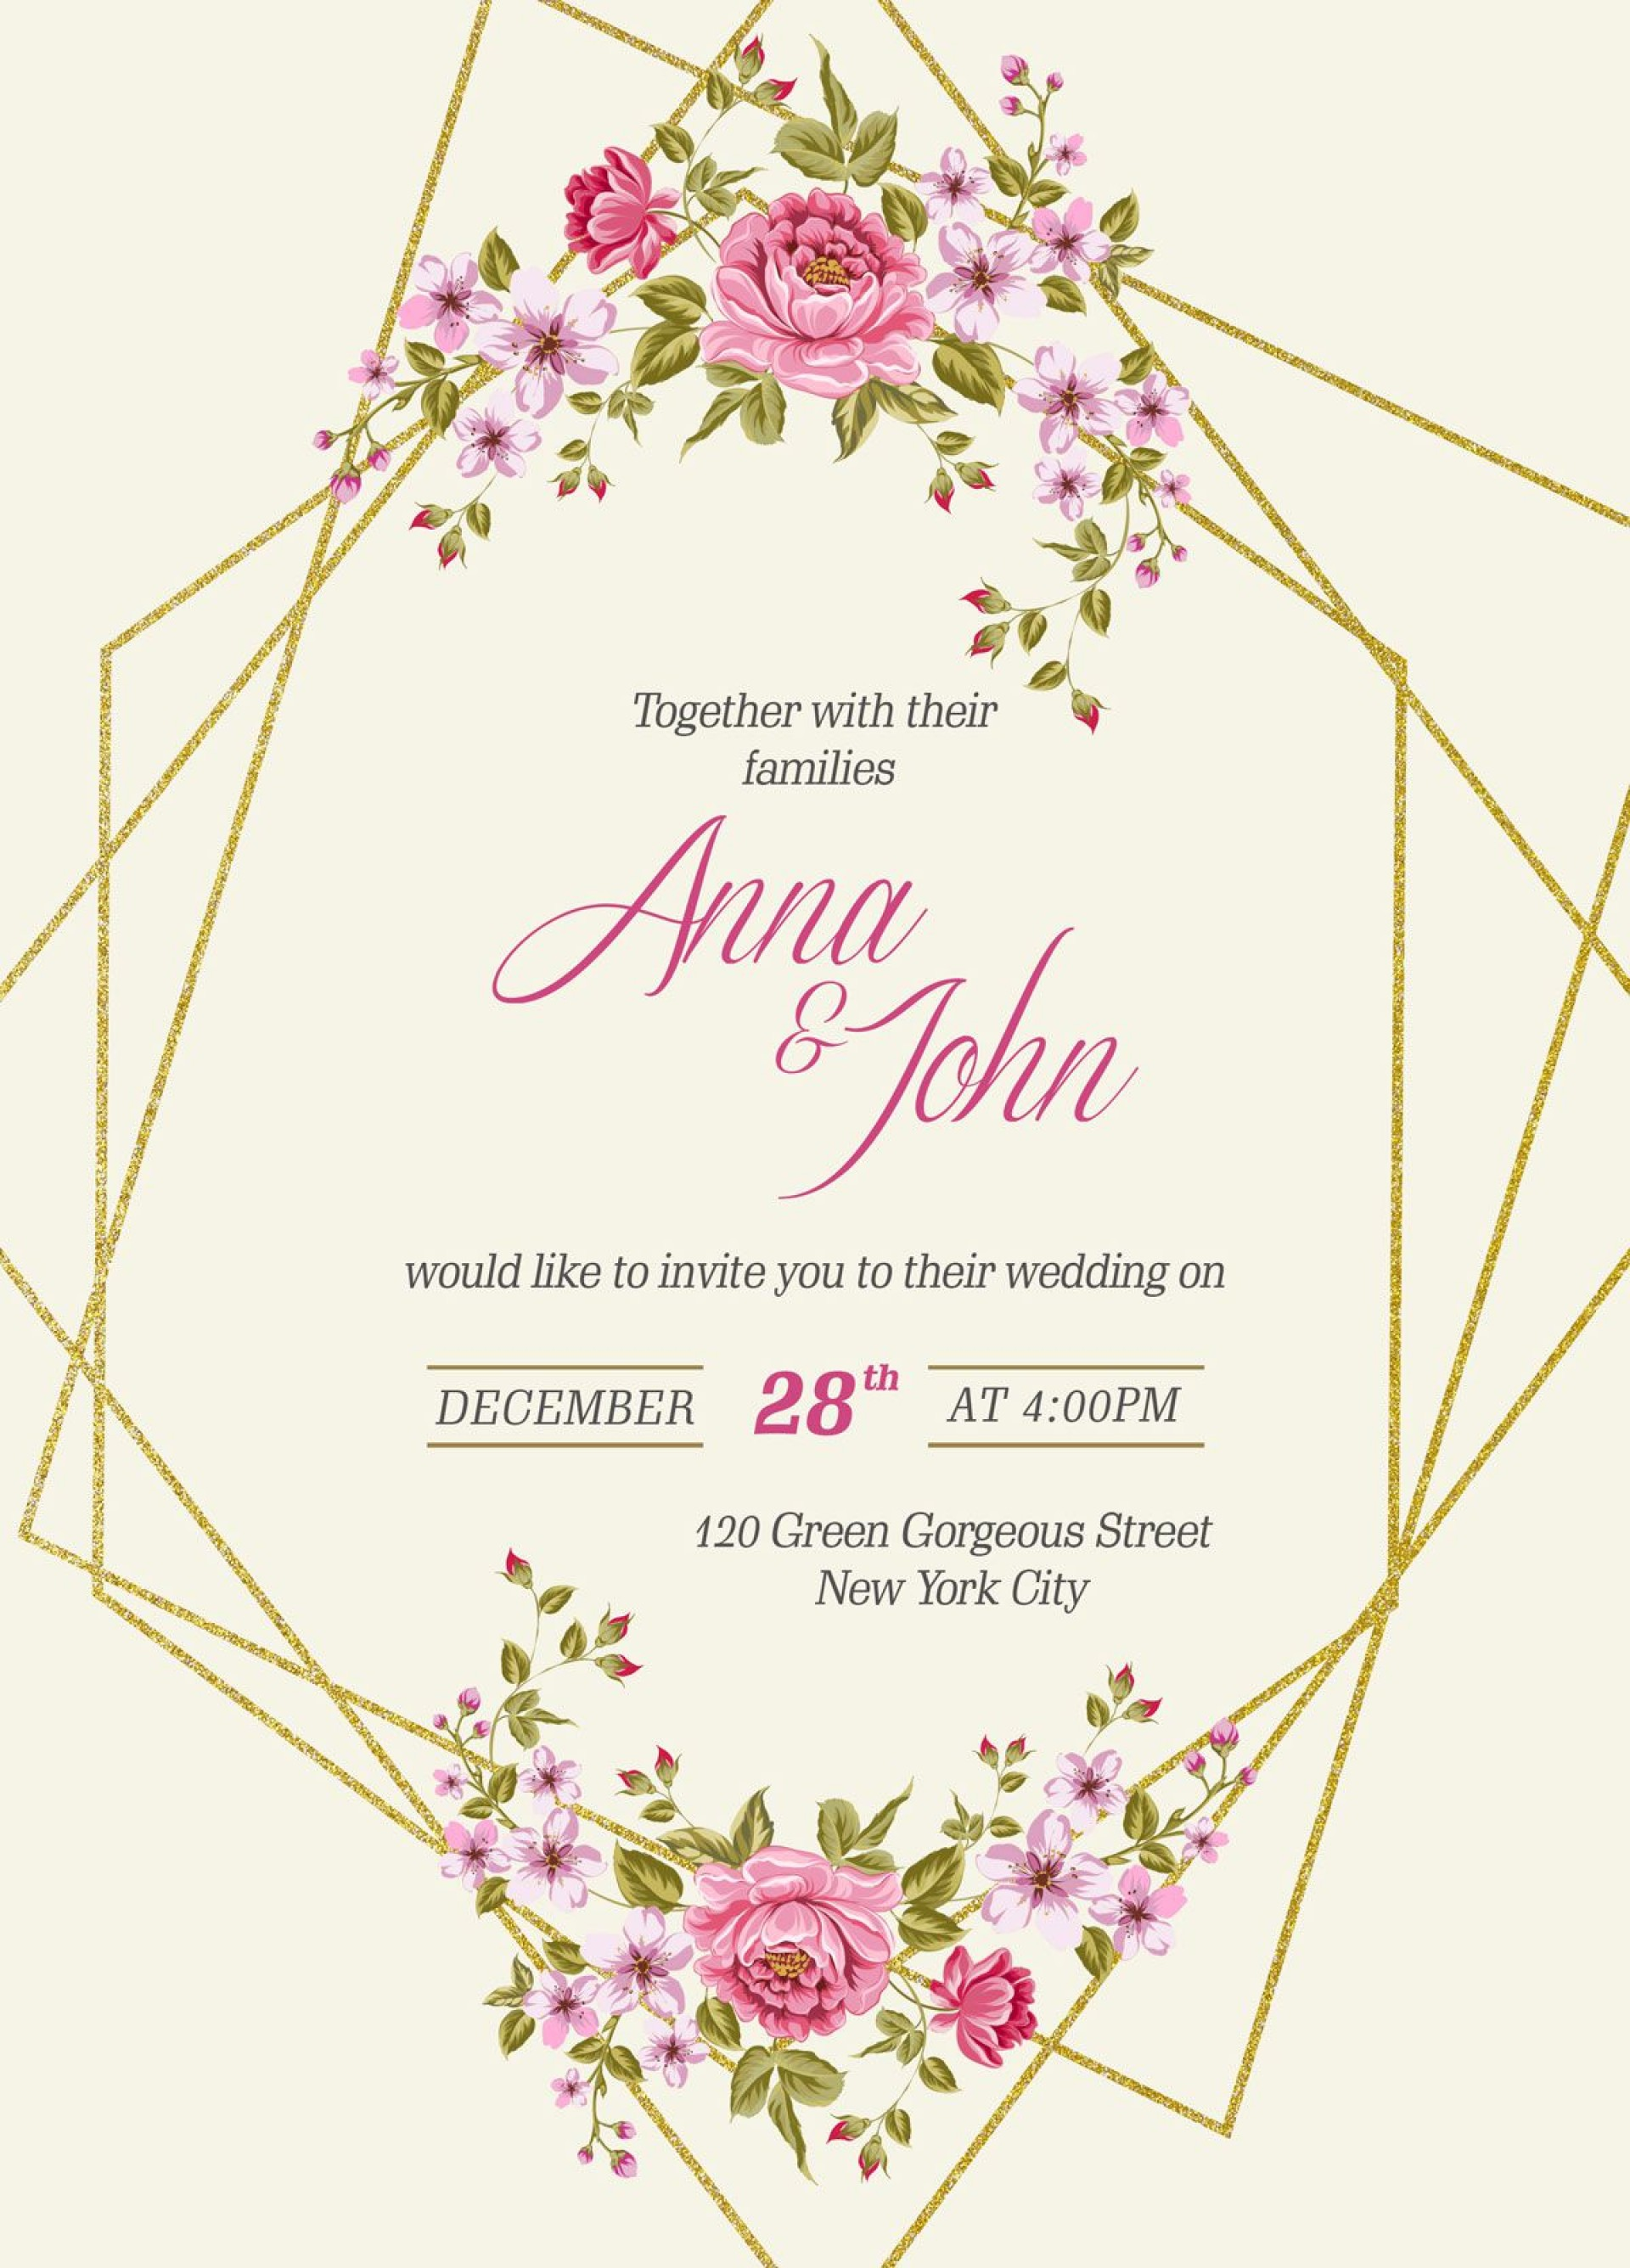 005 Staggering Photoshop Wedding Invitation Template Concept  Templates Hindu Psd Free Download Card1920